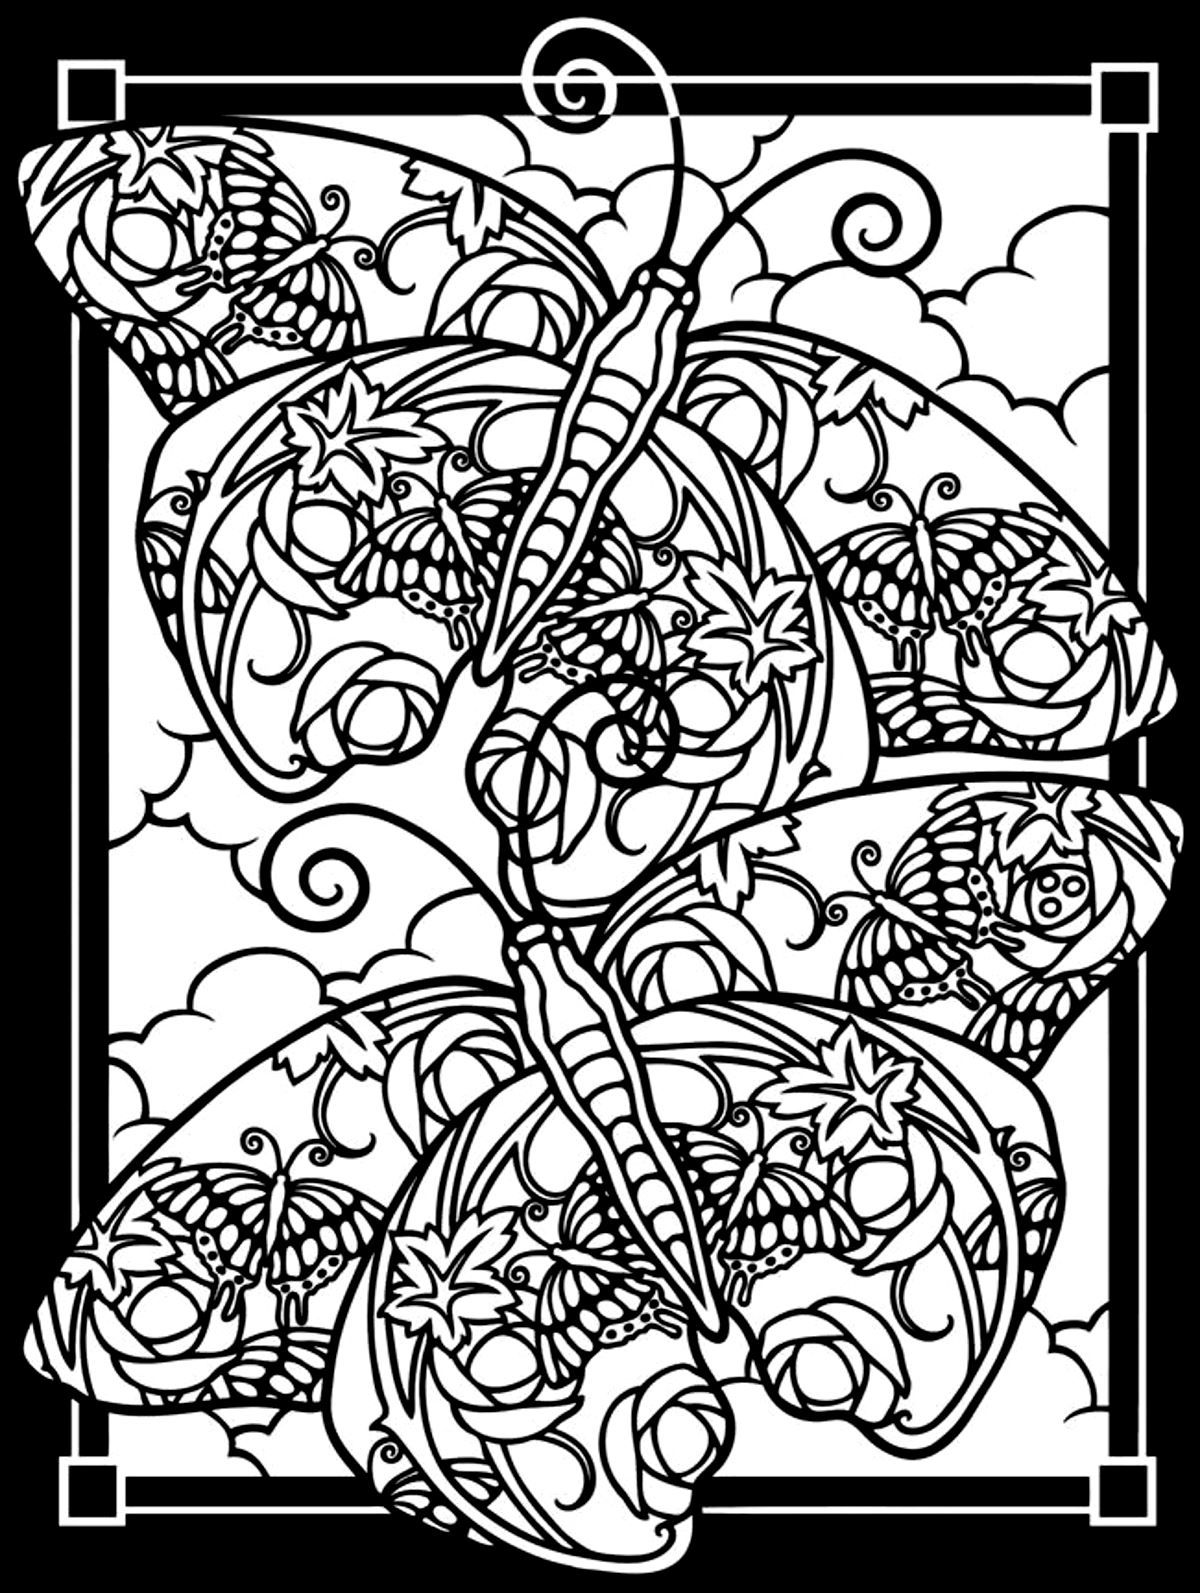 Free coloring pages butterfly - Free Coloring Page Coloring Adult Difficult Two Butterflies Black Background